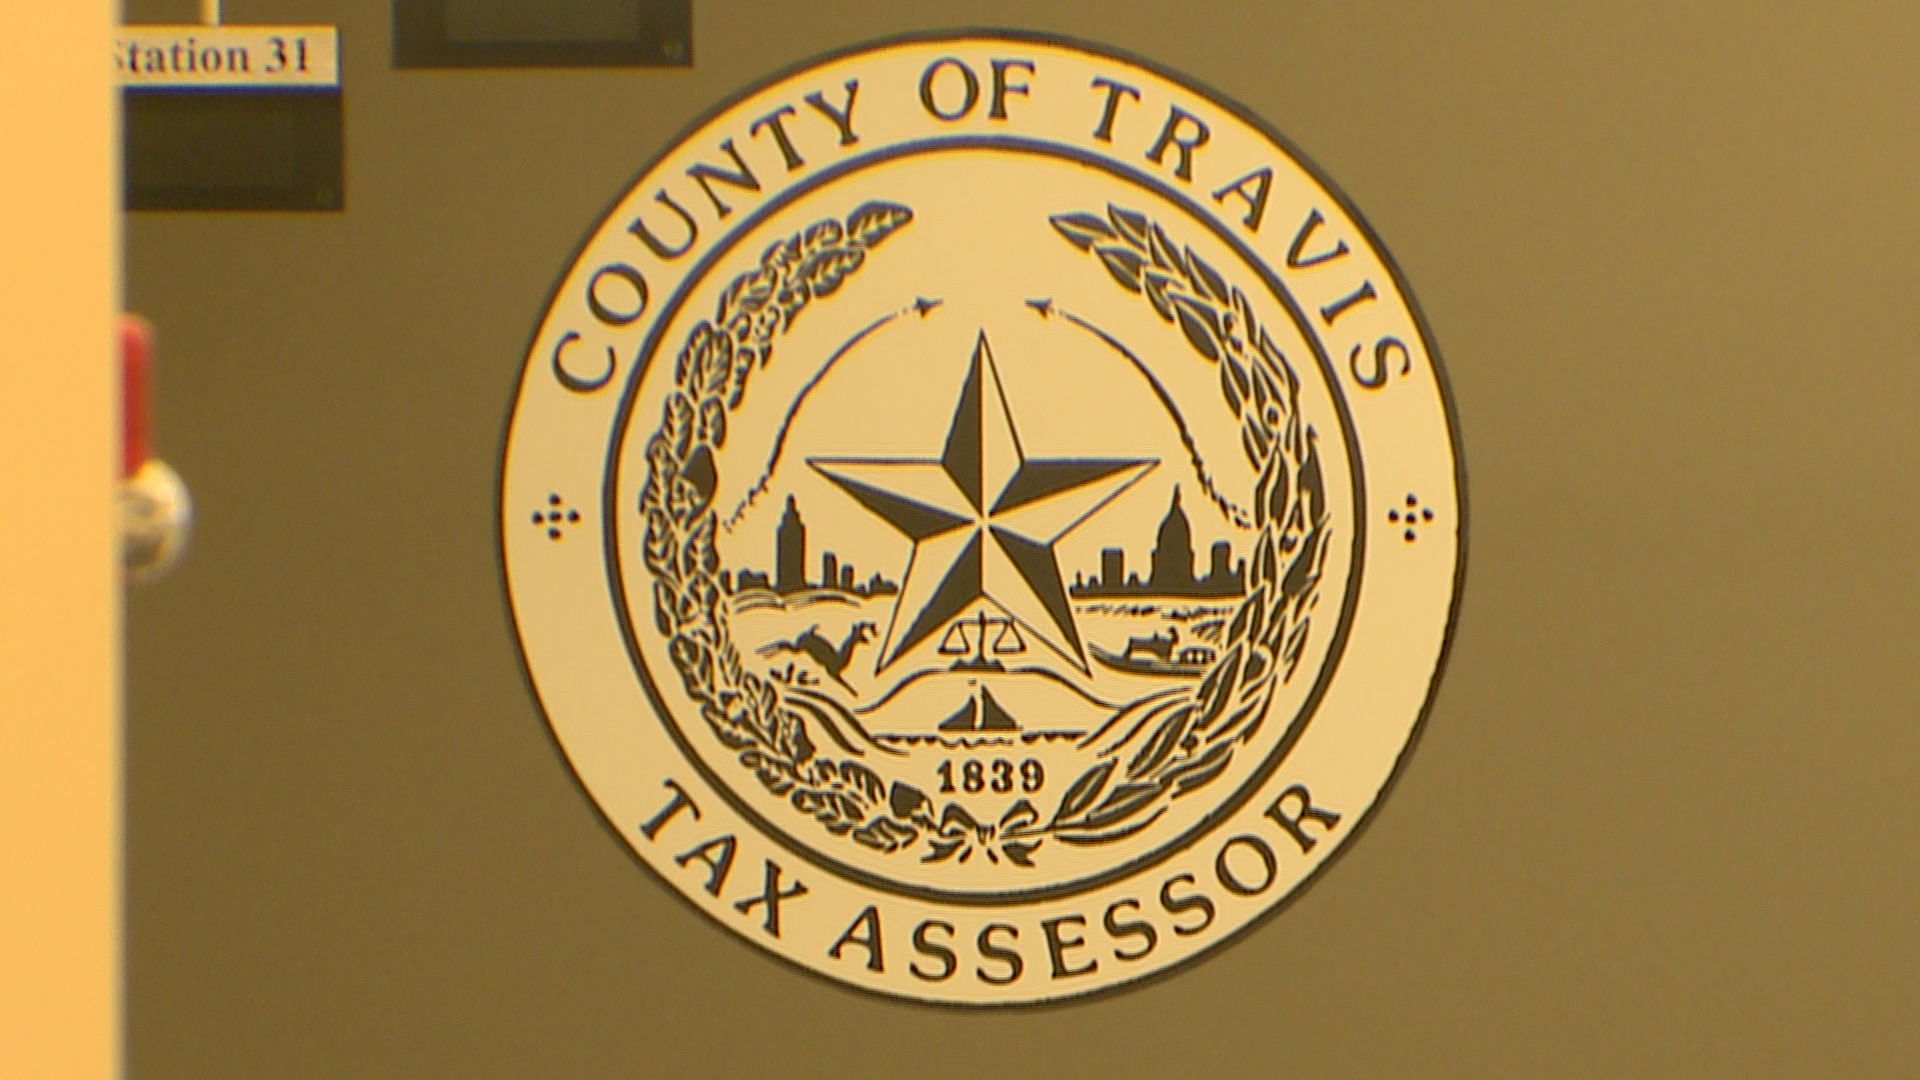 county of travis tax assessor_340548